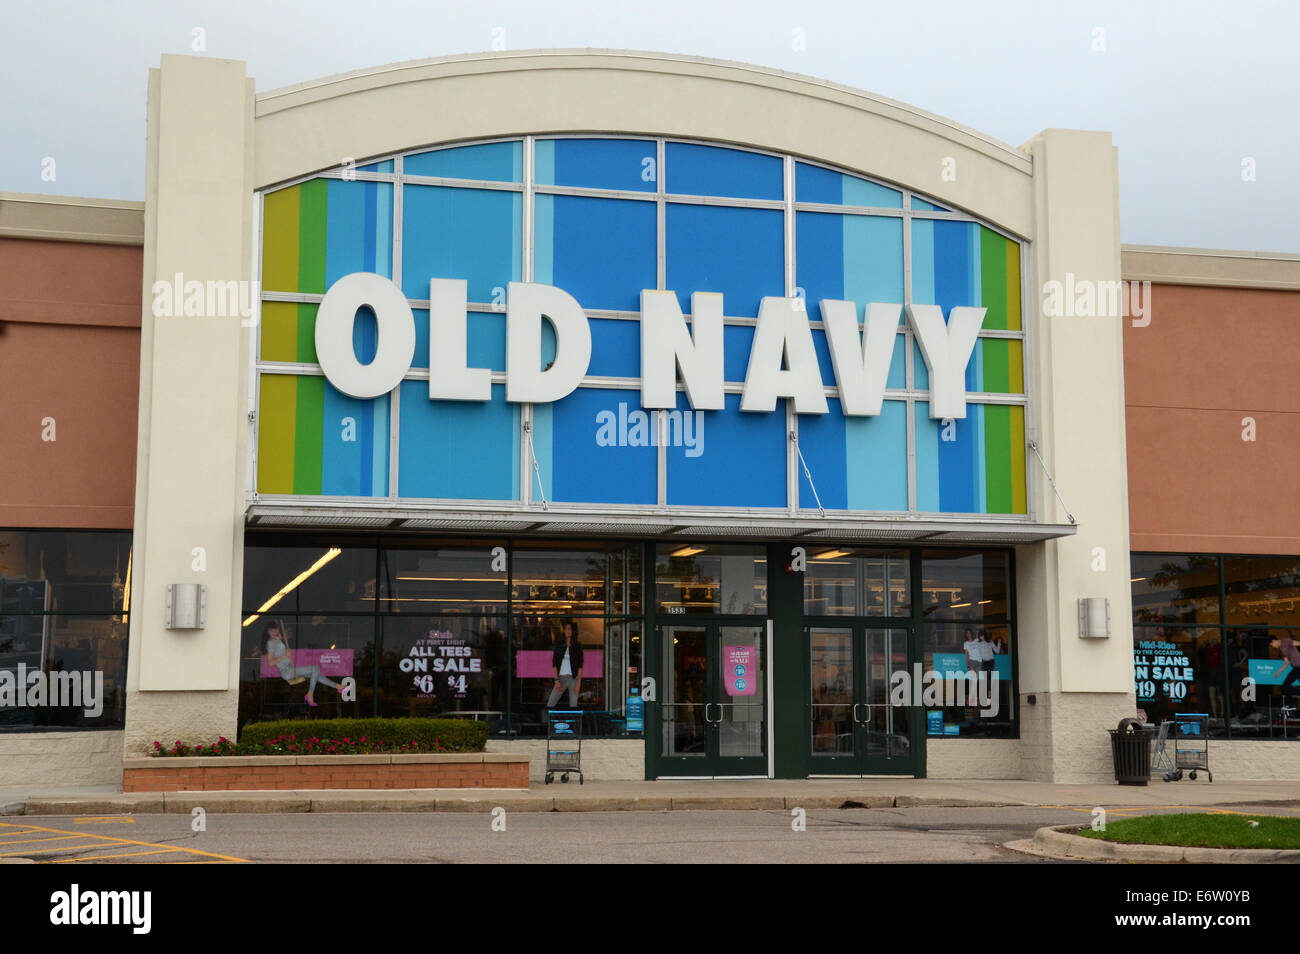 ANN ARBOR, MI - AUGUST 24: Sales at Old Navy Ann Arbor store is shown on August 24, 2014. Stock Photo